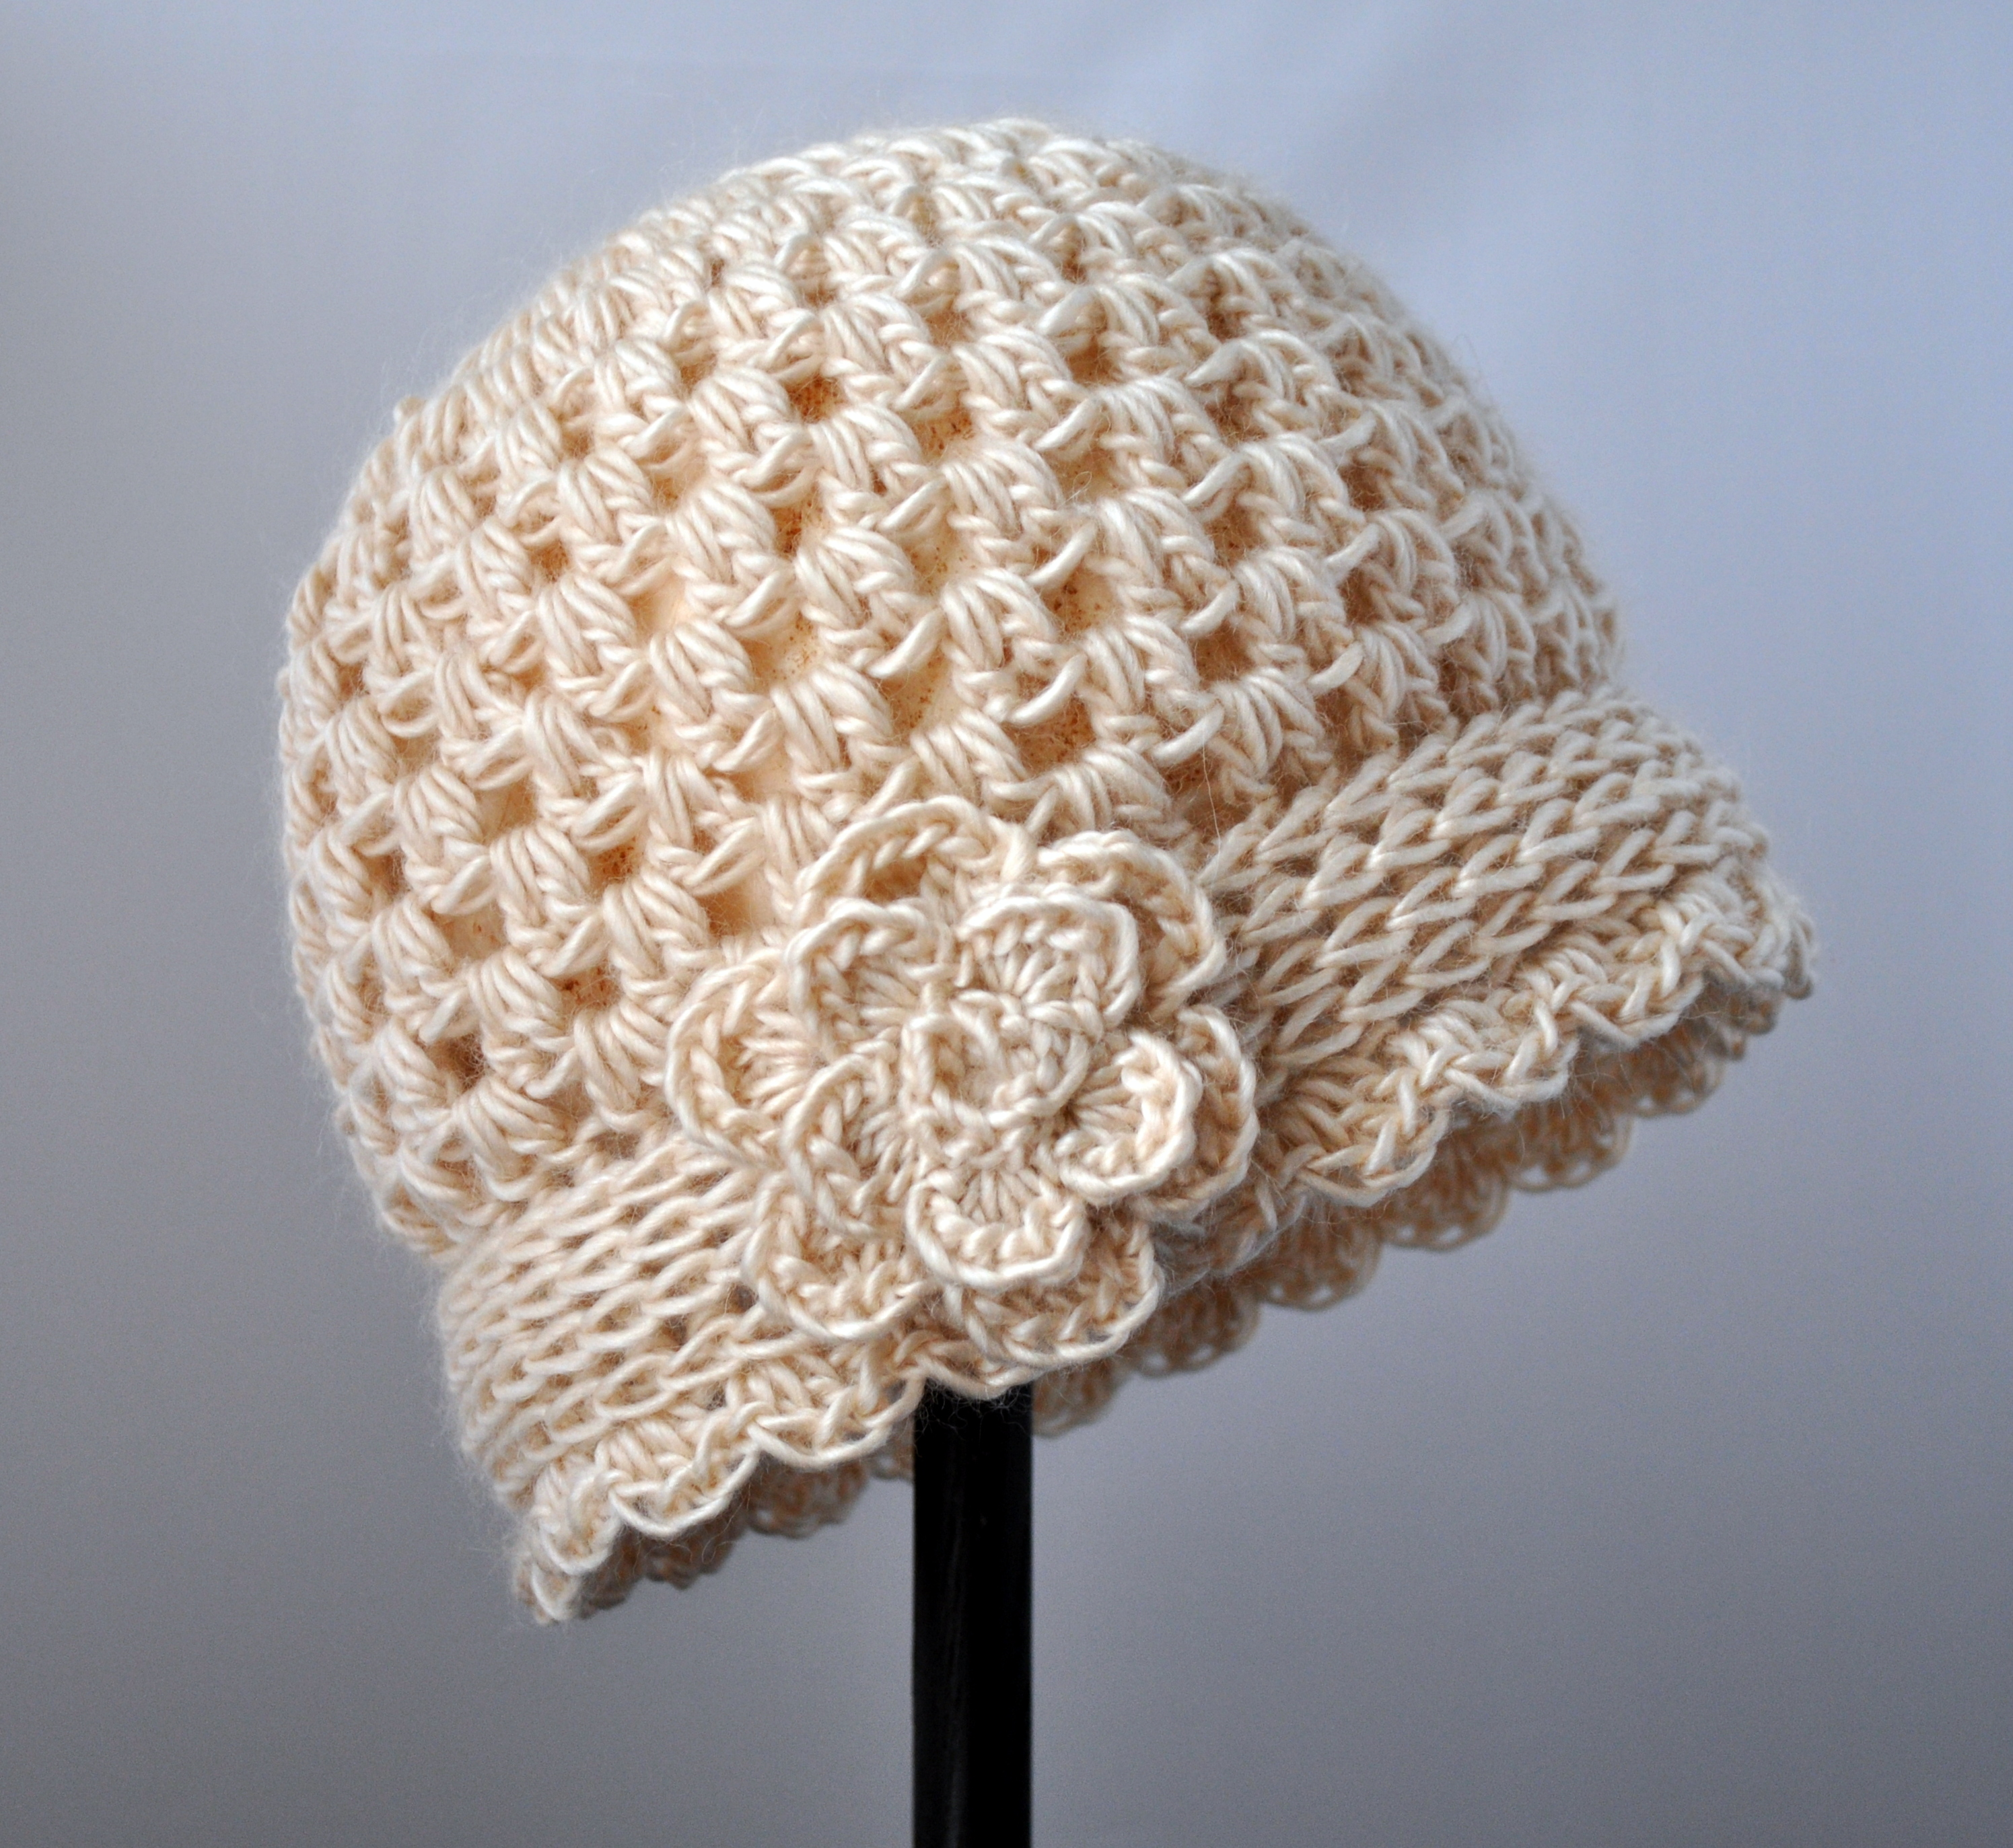 Crochet Patterns Hats : Crochet Vintage Flowered Cloche Pattern Classy Crochet